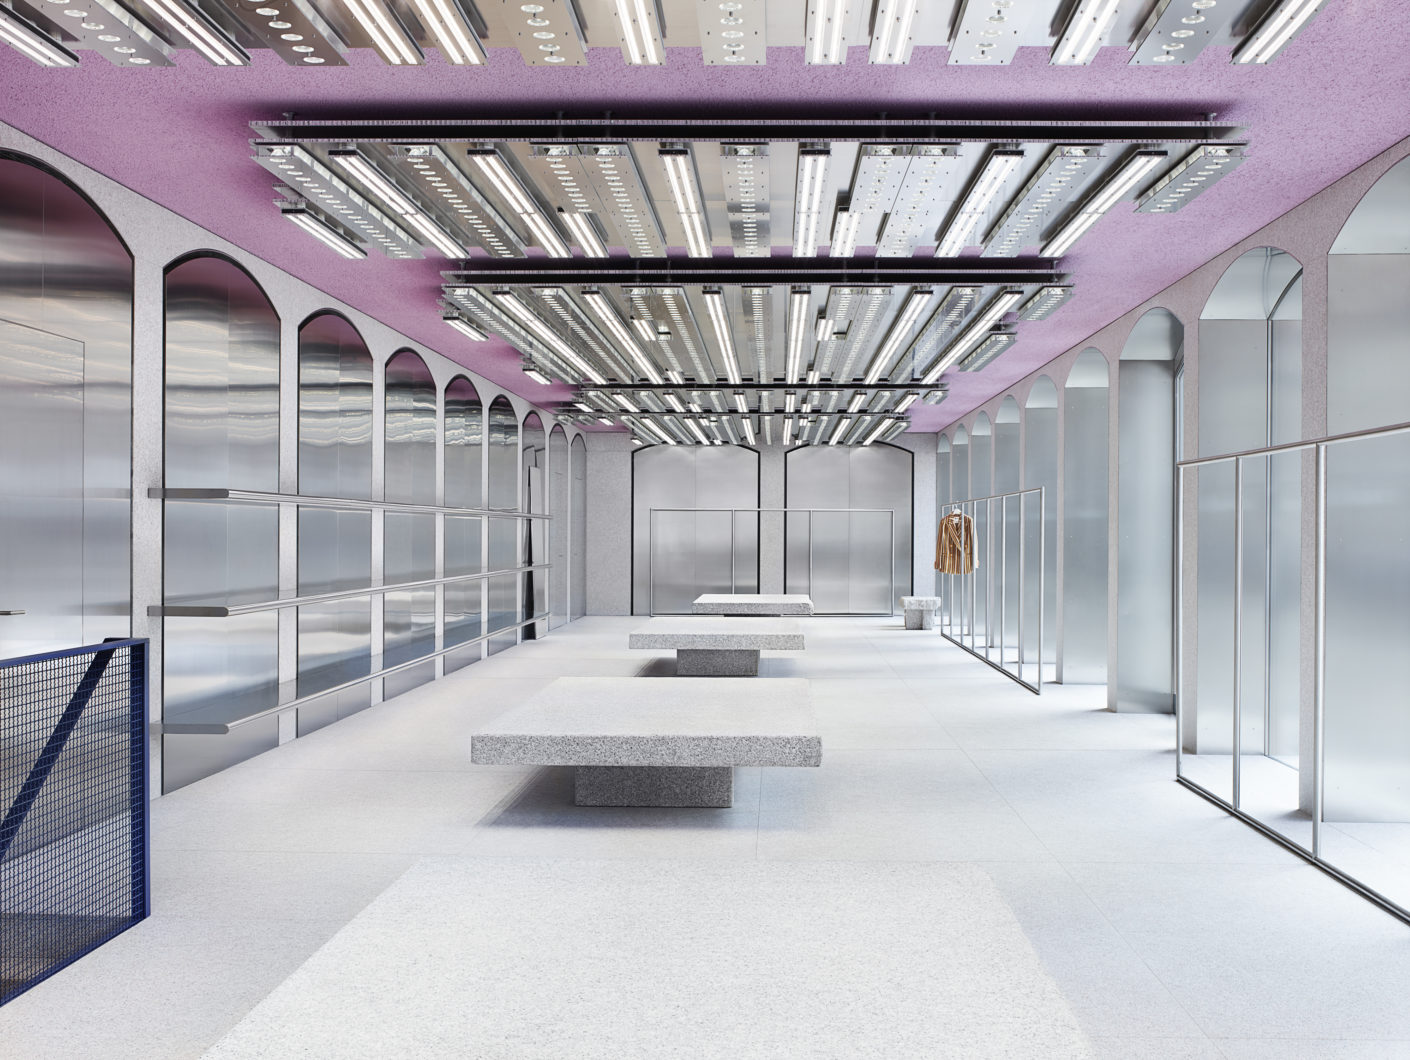 The new signature store design of fashion label Acne Studios